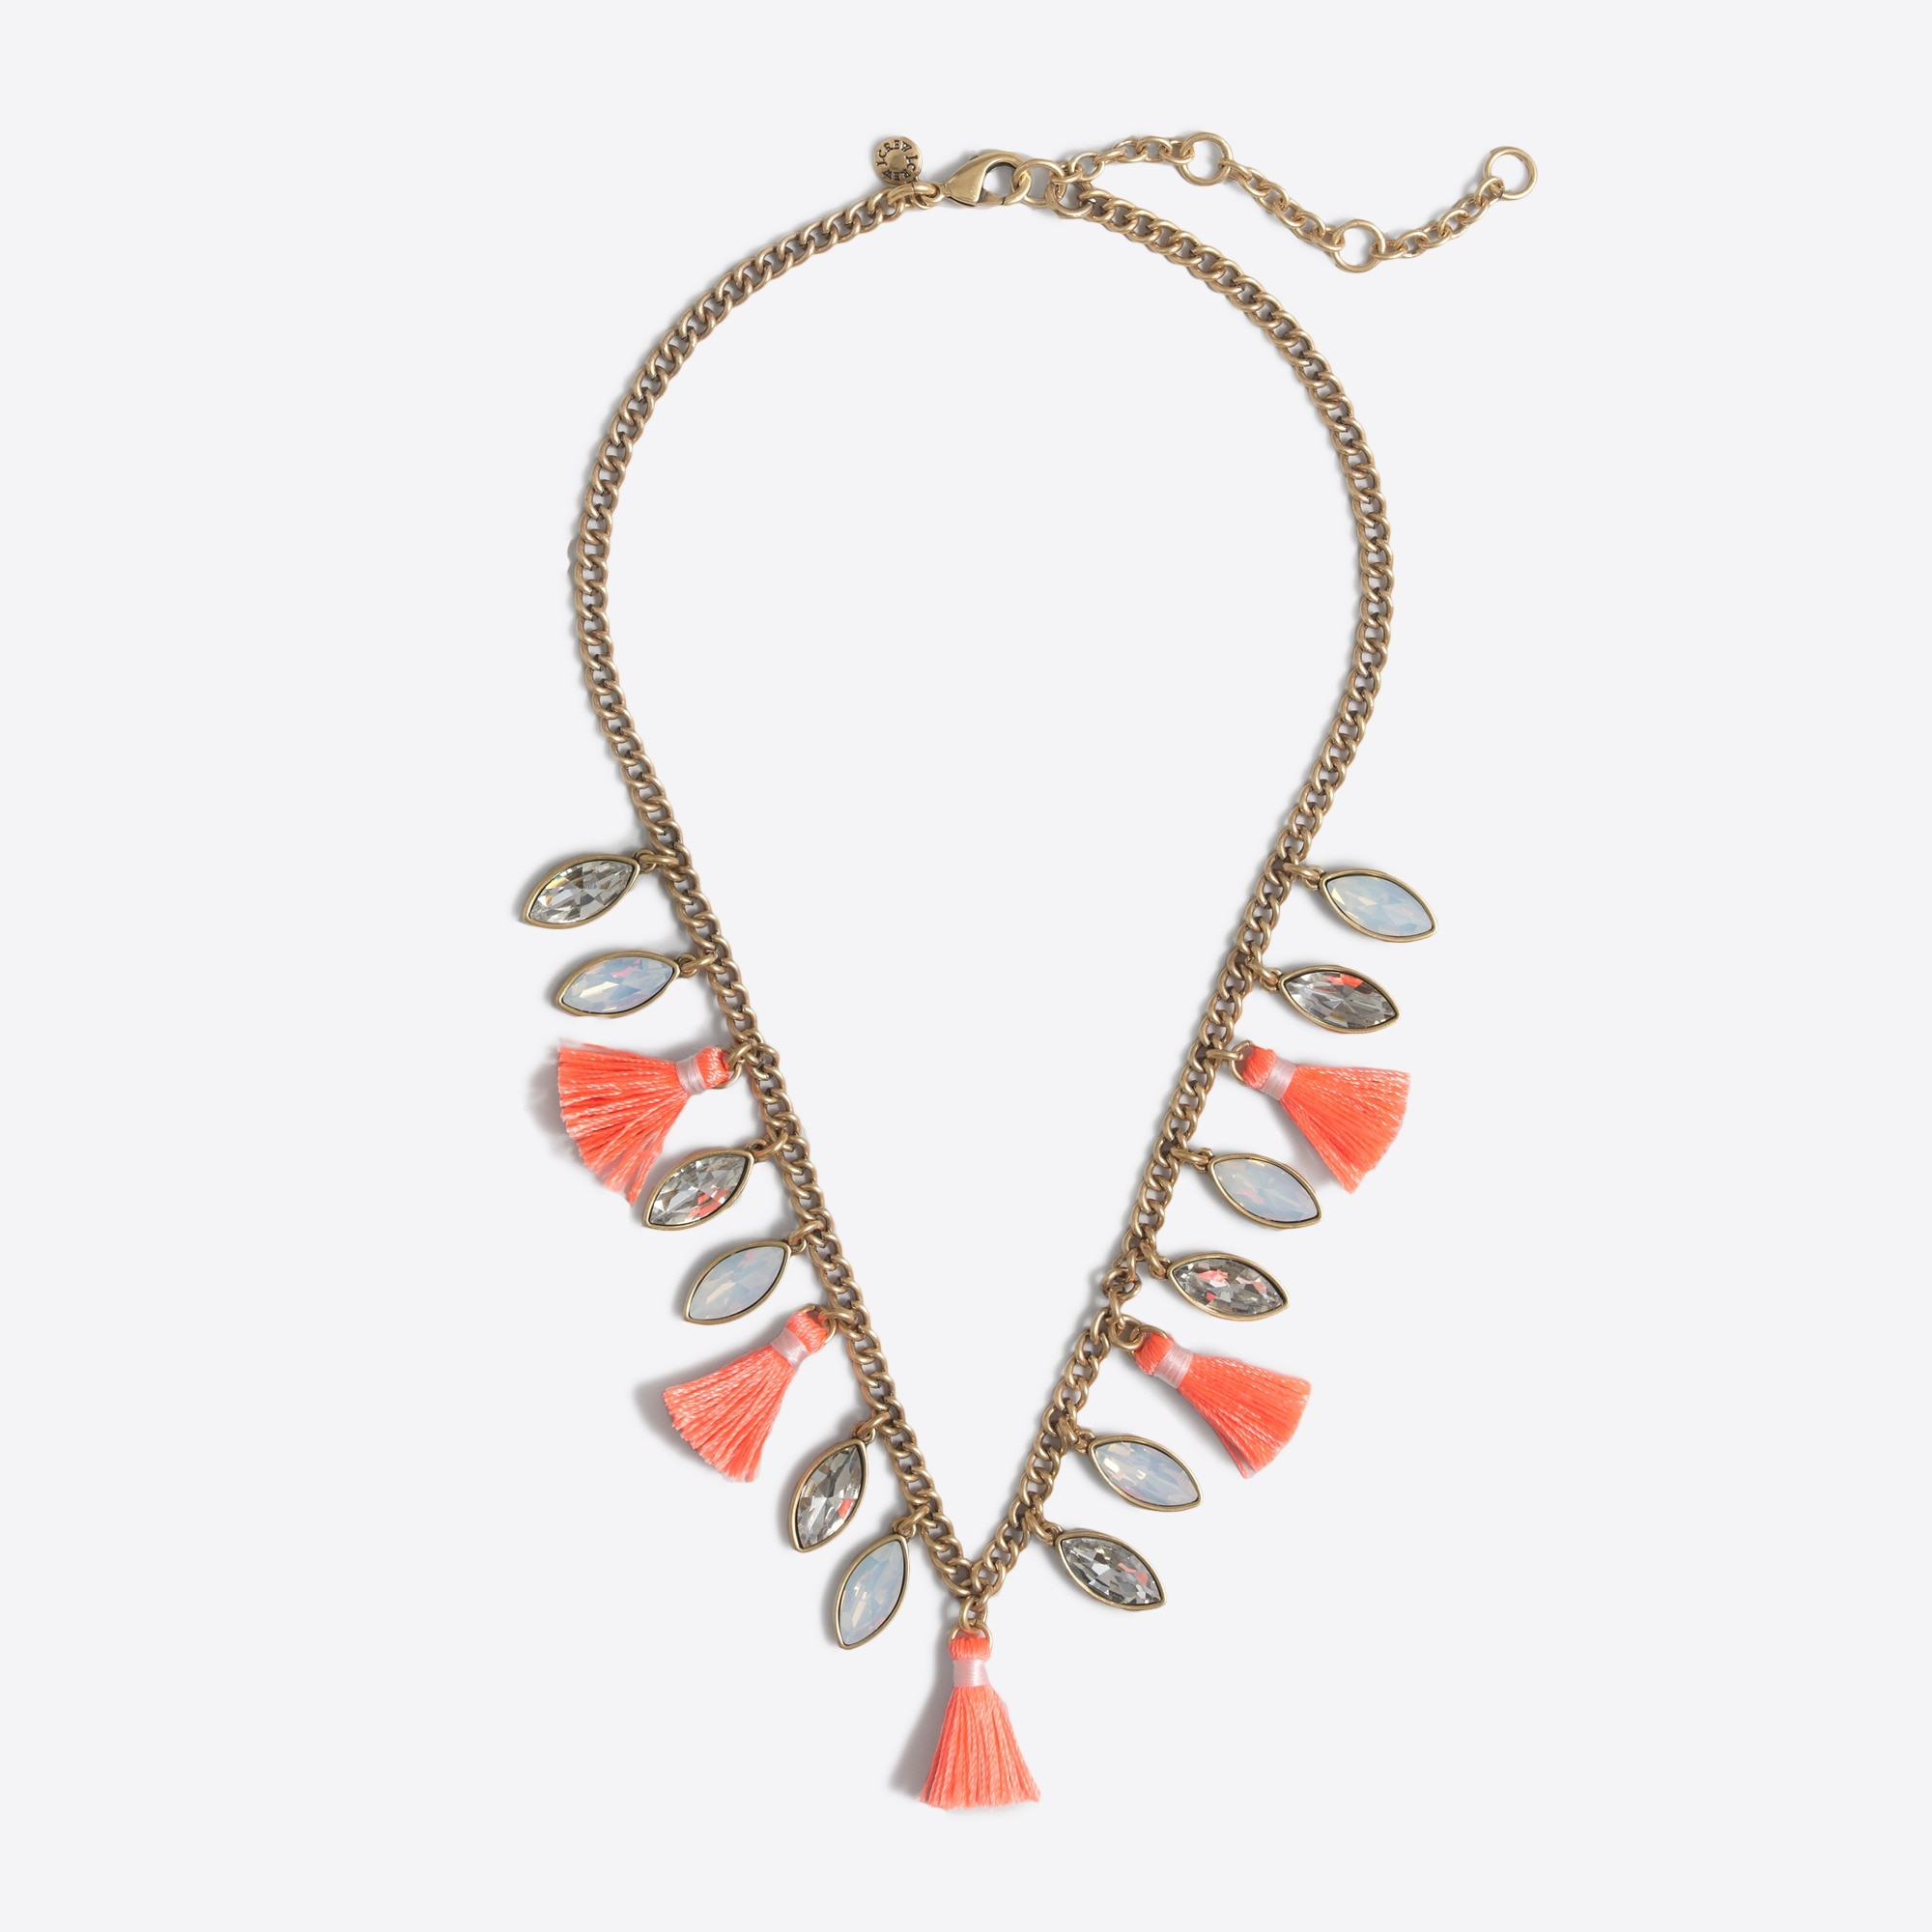 stone and tassel necklace : factorywomen necklaces